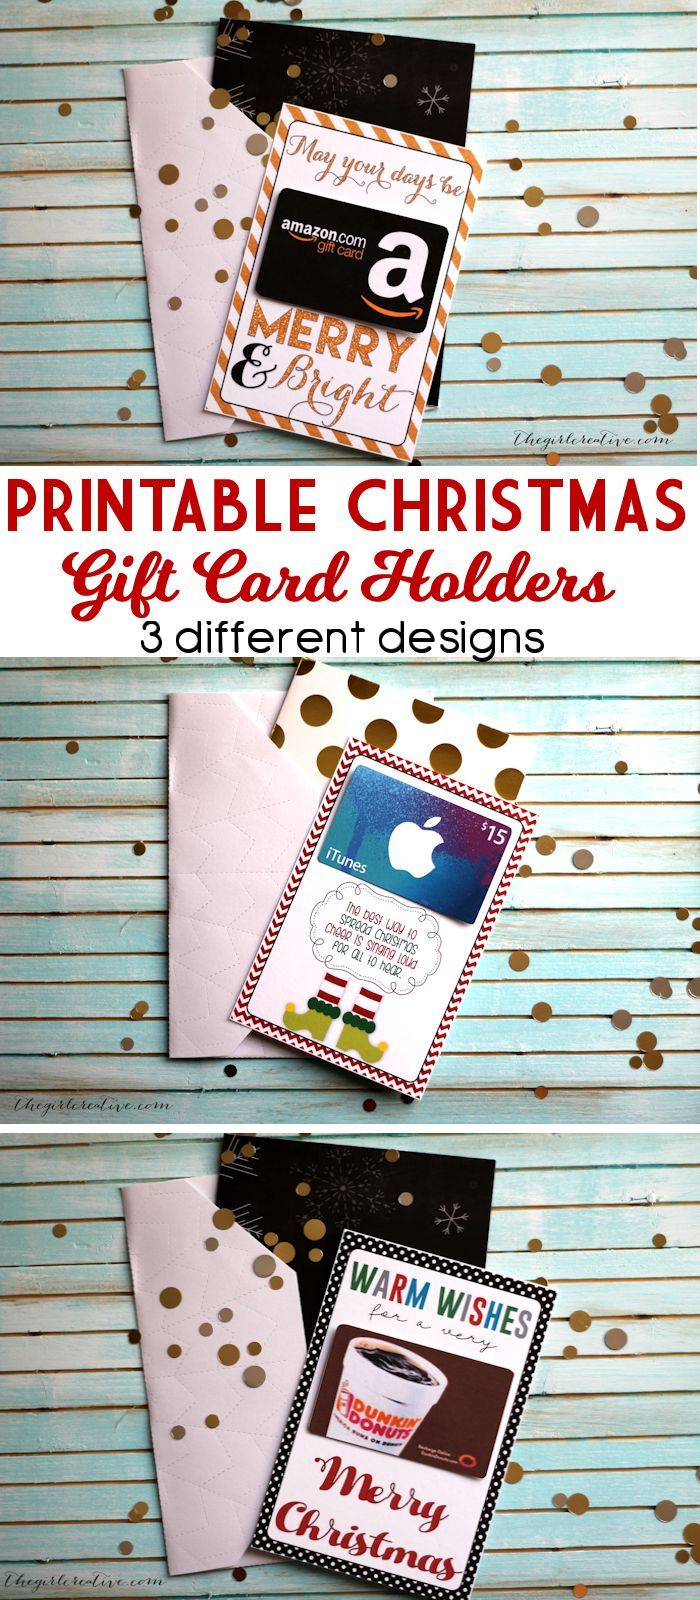 The best free christmas printables gift tags holiday greeting the best free christmas printables gift tags holiday greeting cards gift card holders and more fun downloadable paper craft winter freebies kristyandbryce Image collections